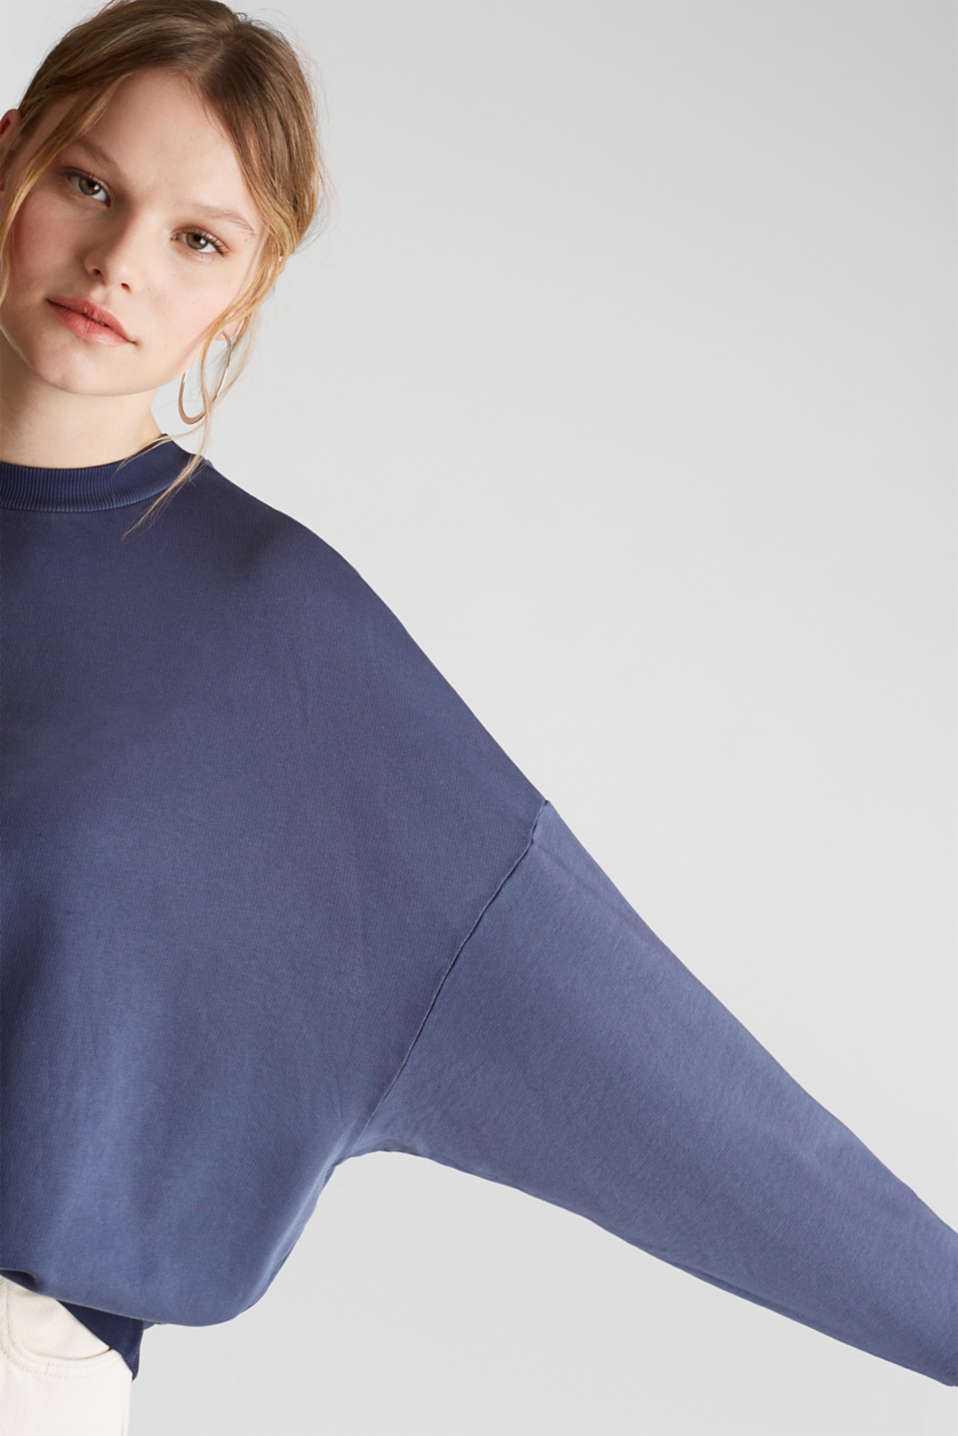 Sweatshirt with batwing sleeves, 100% cotton, NAVY, detail image number 2